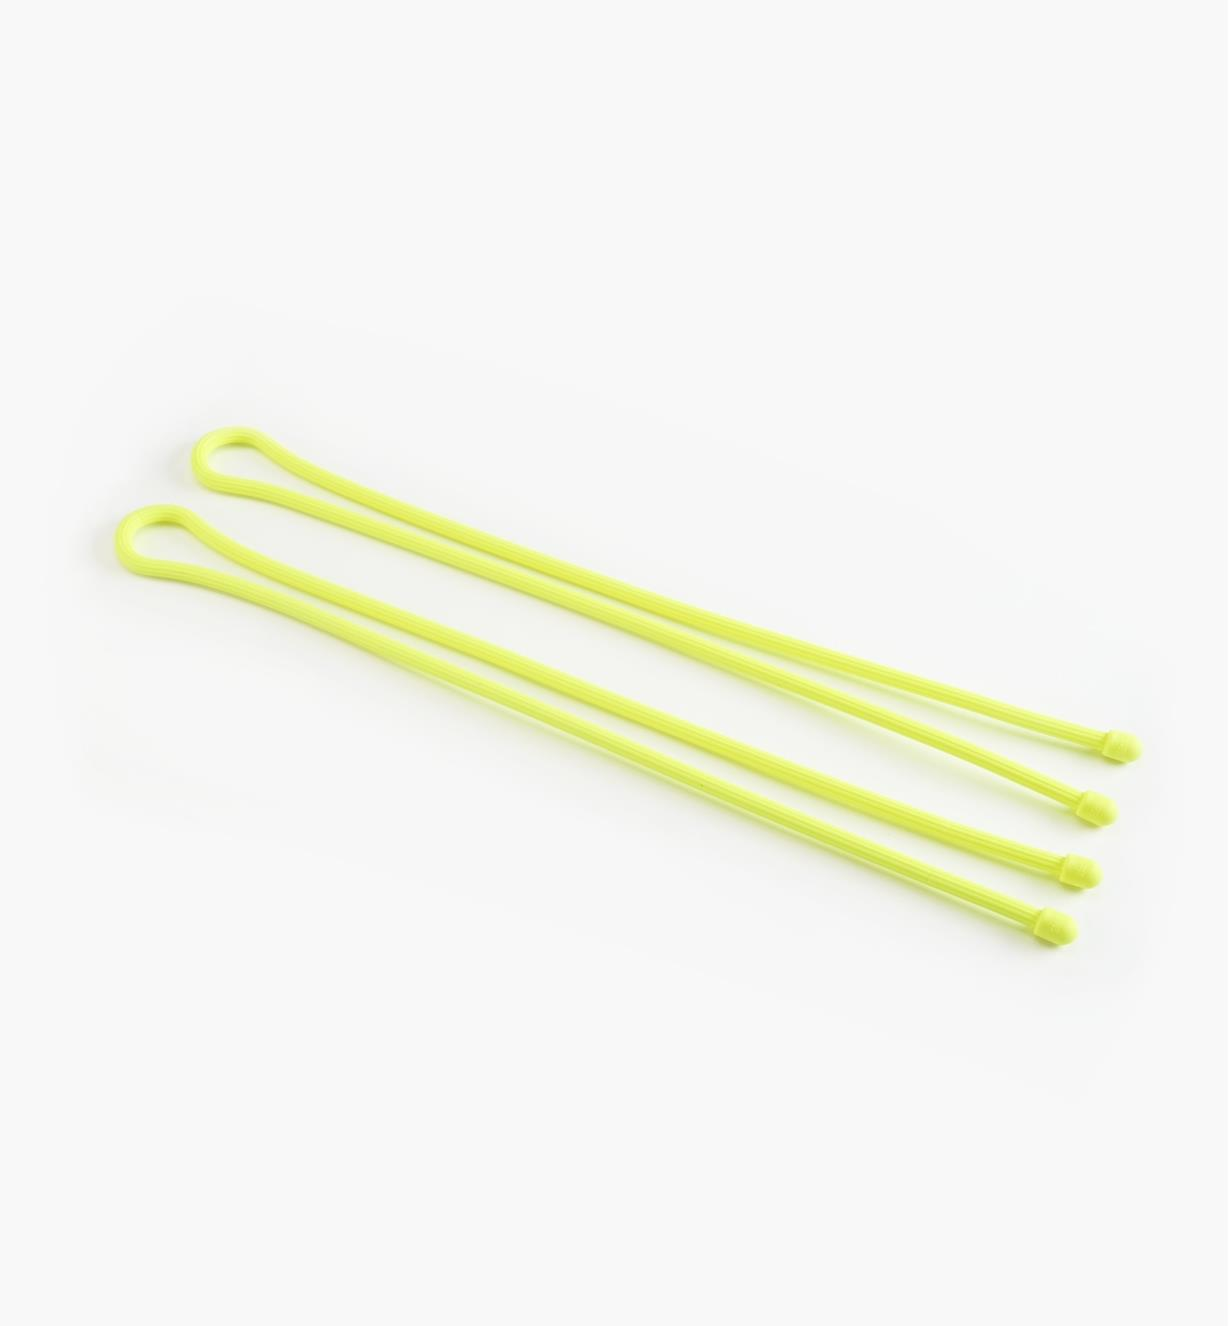 "03K7635 - 32"" Yellow Gear Ties, pkg. of 2"